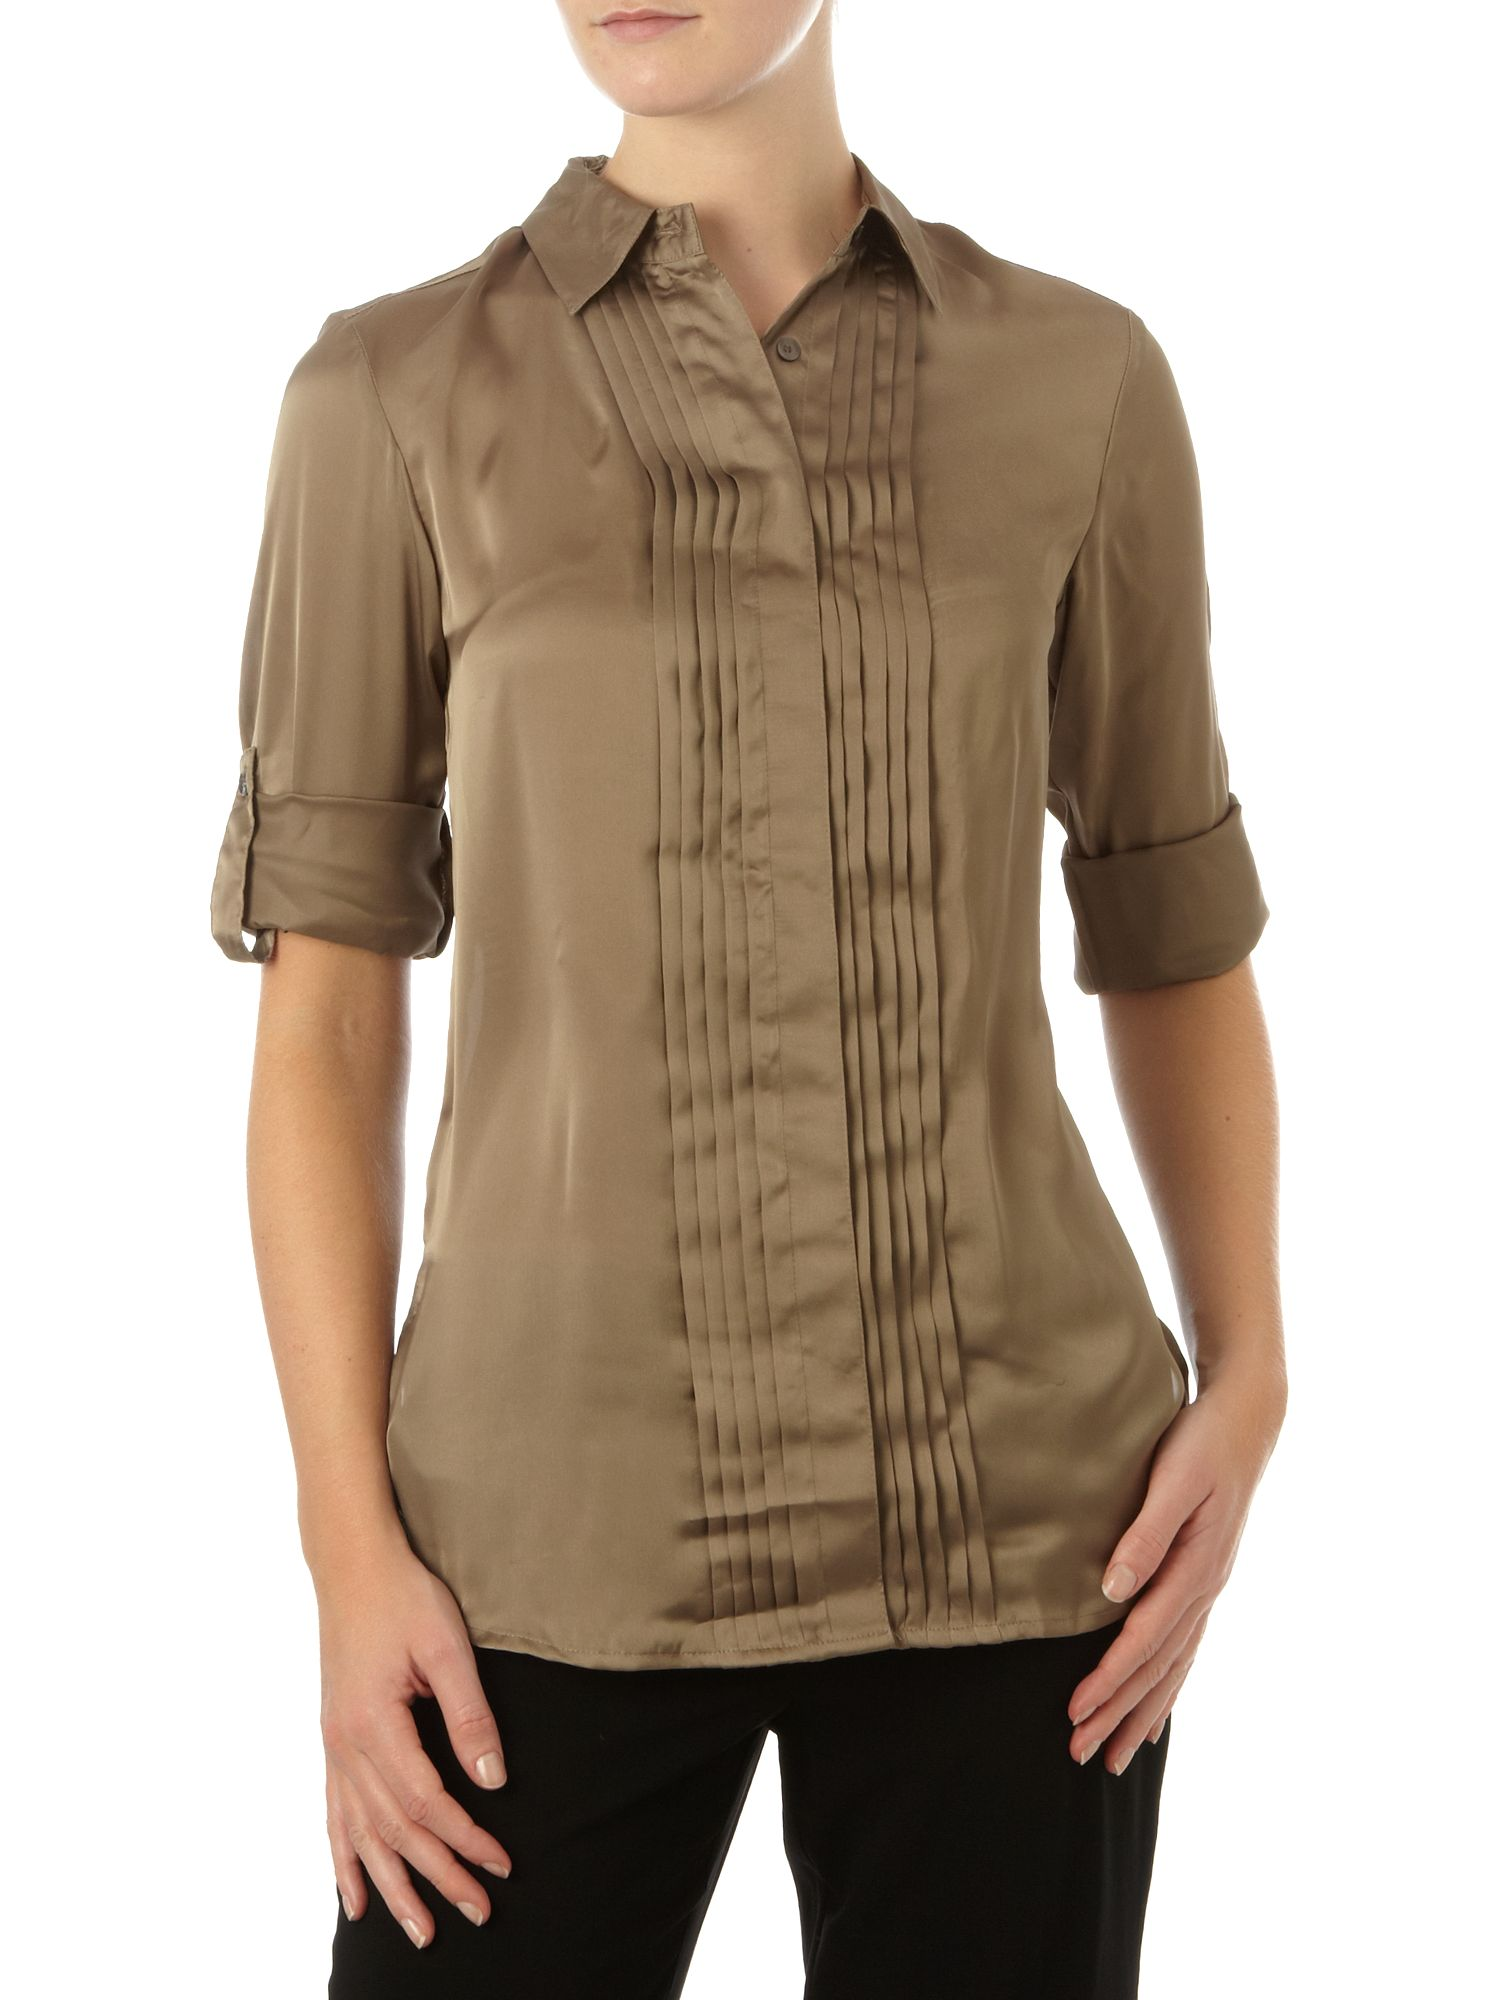 Kenneth Cole Womens Kenneth Cole Long line woven blouse, product image